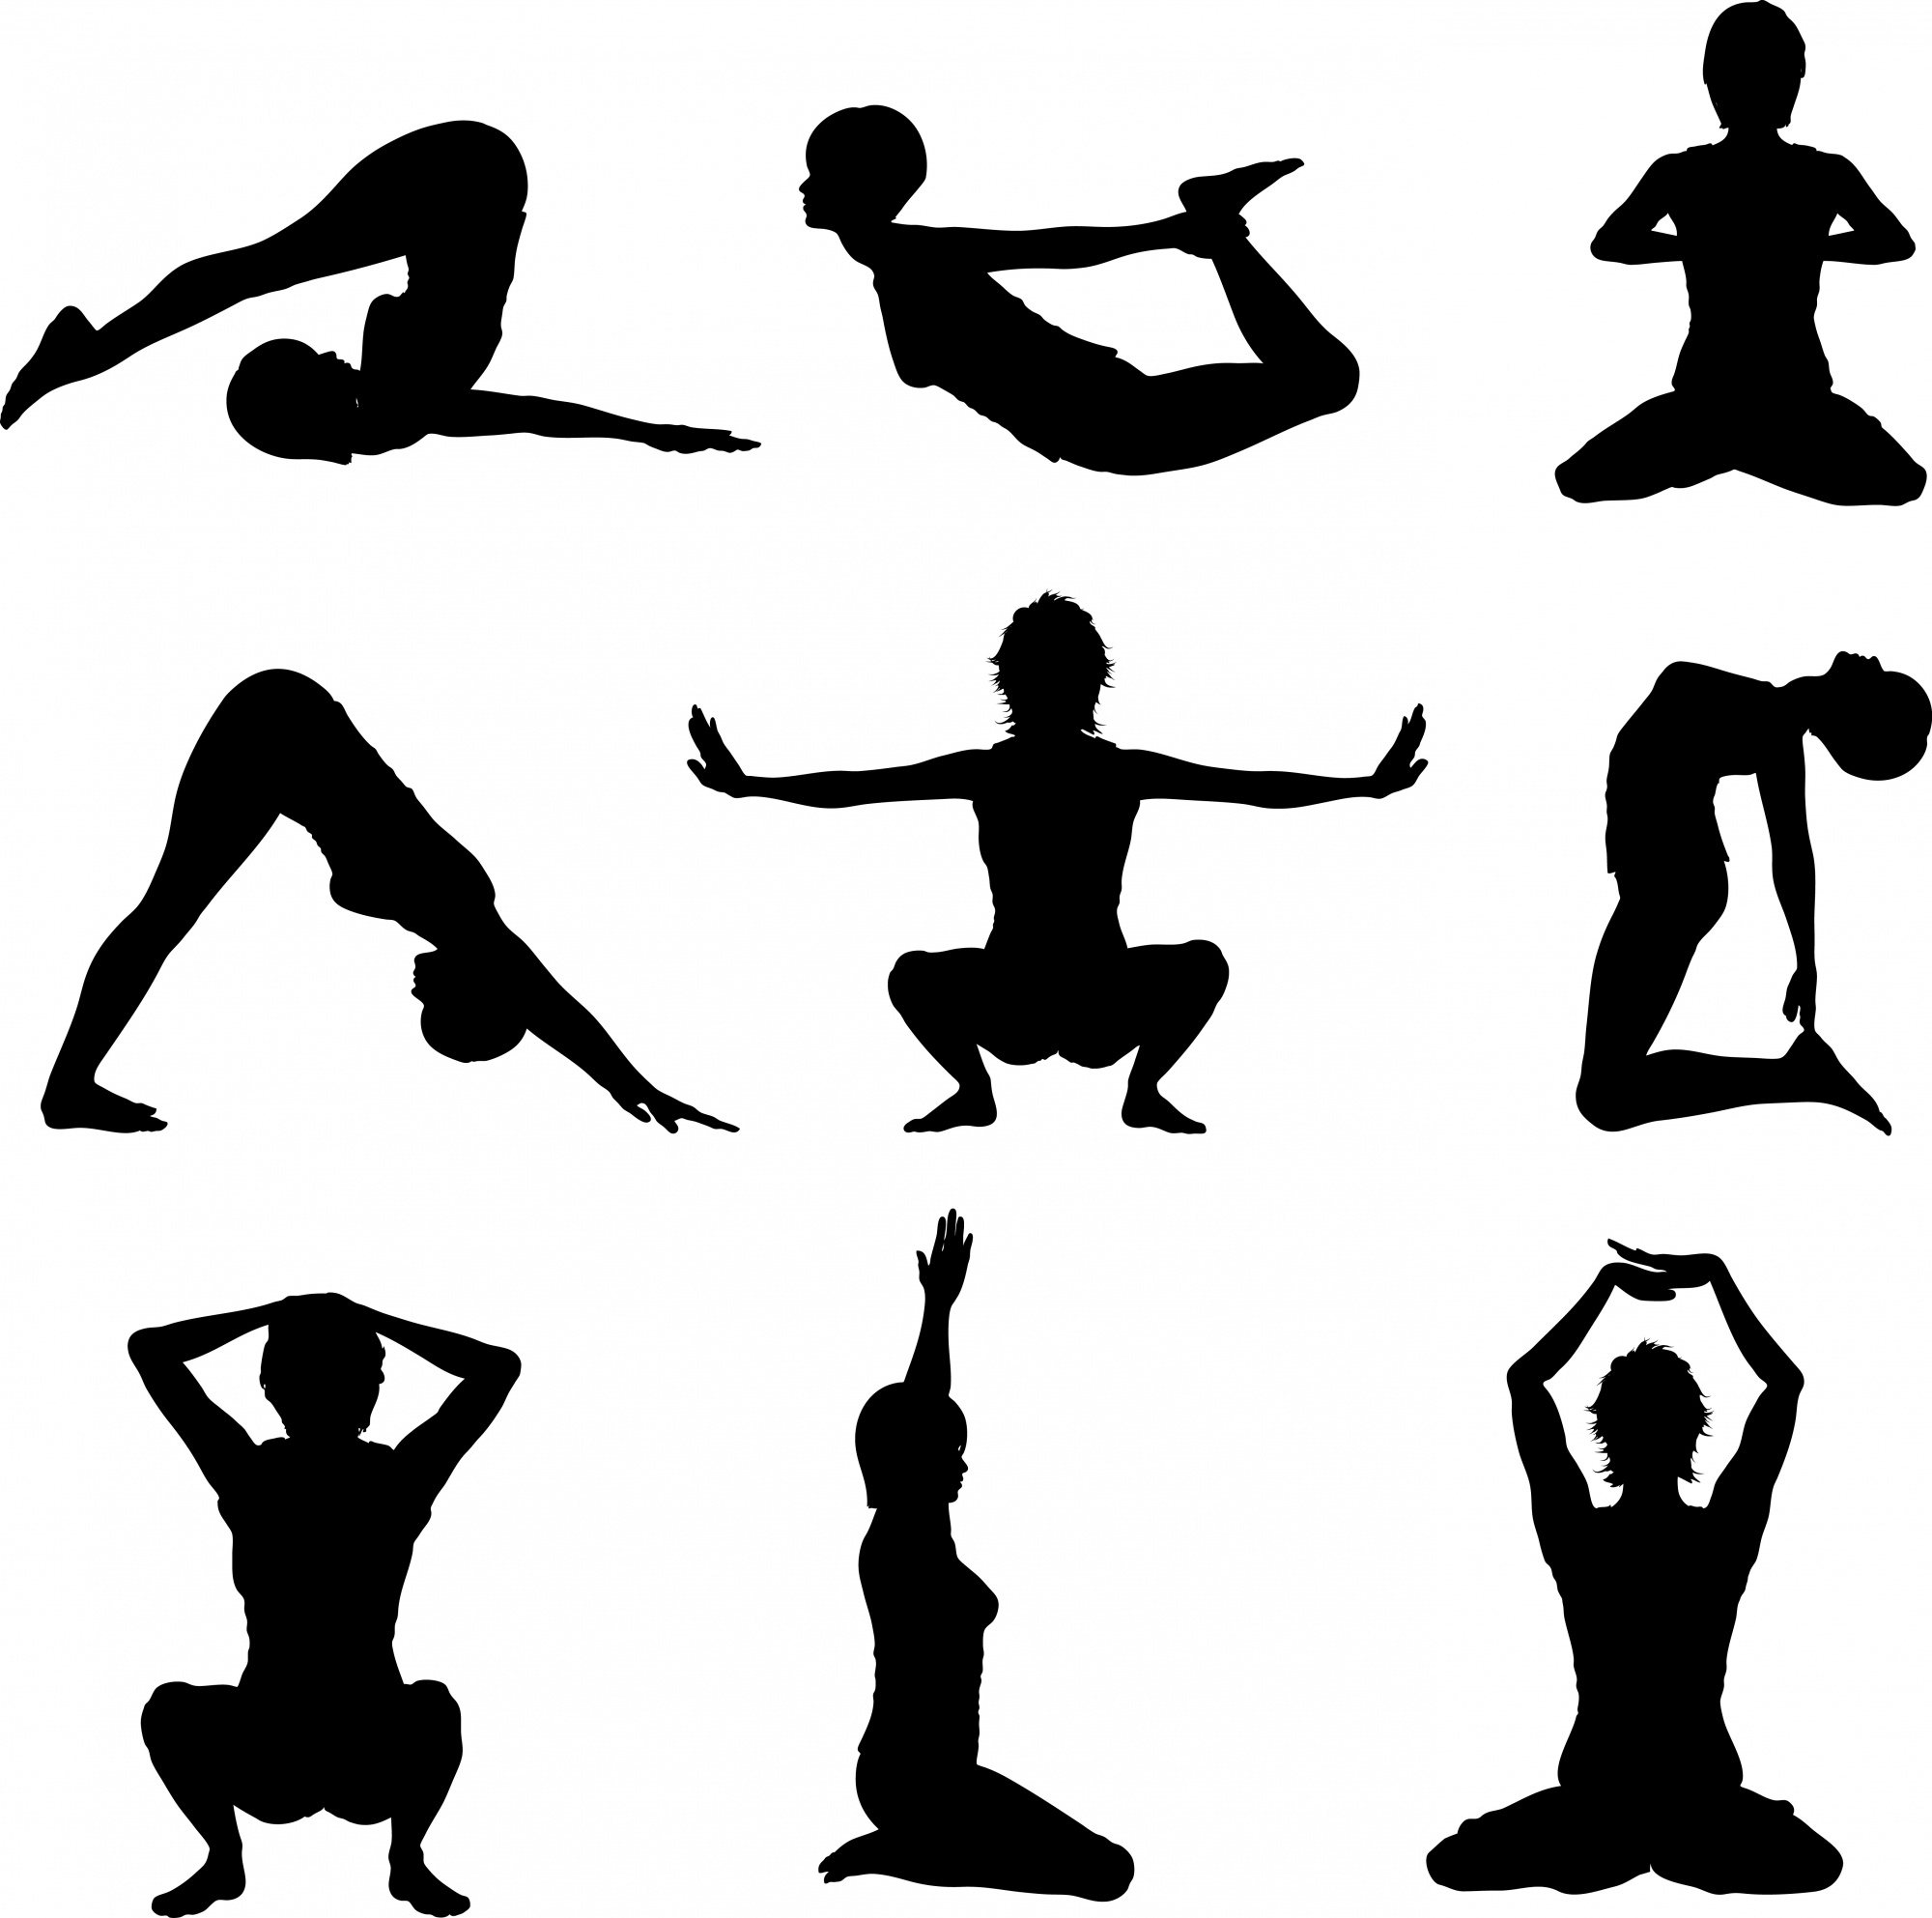 Silhouettes of women in various yoga poses